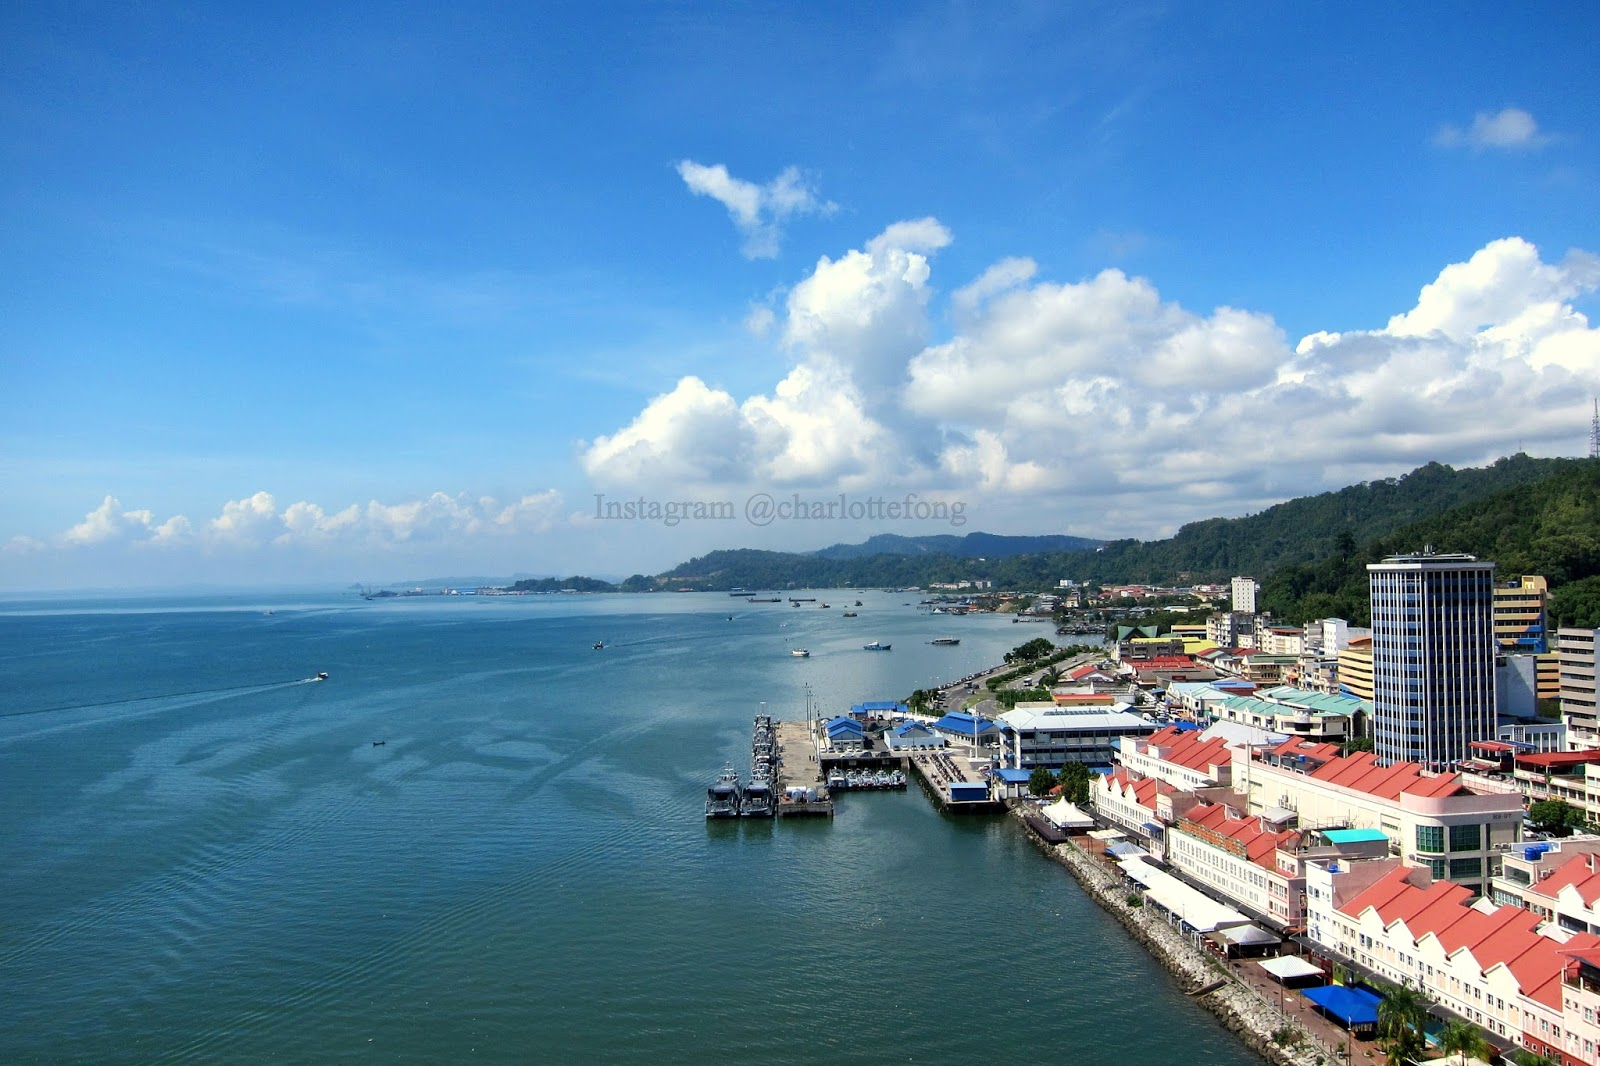 The Charlotte Times: Explore Sandakan with Four Points by